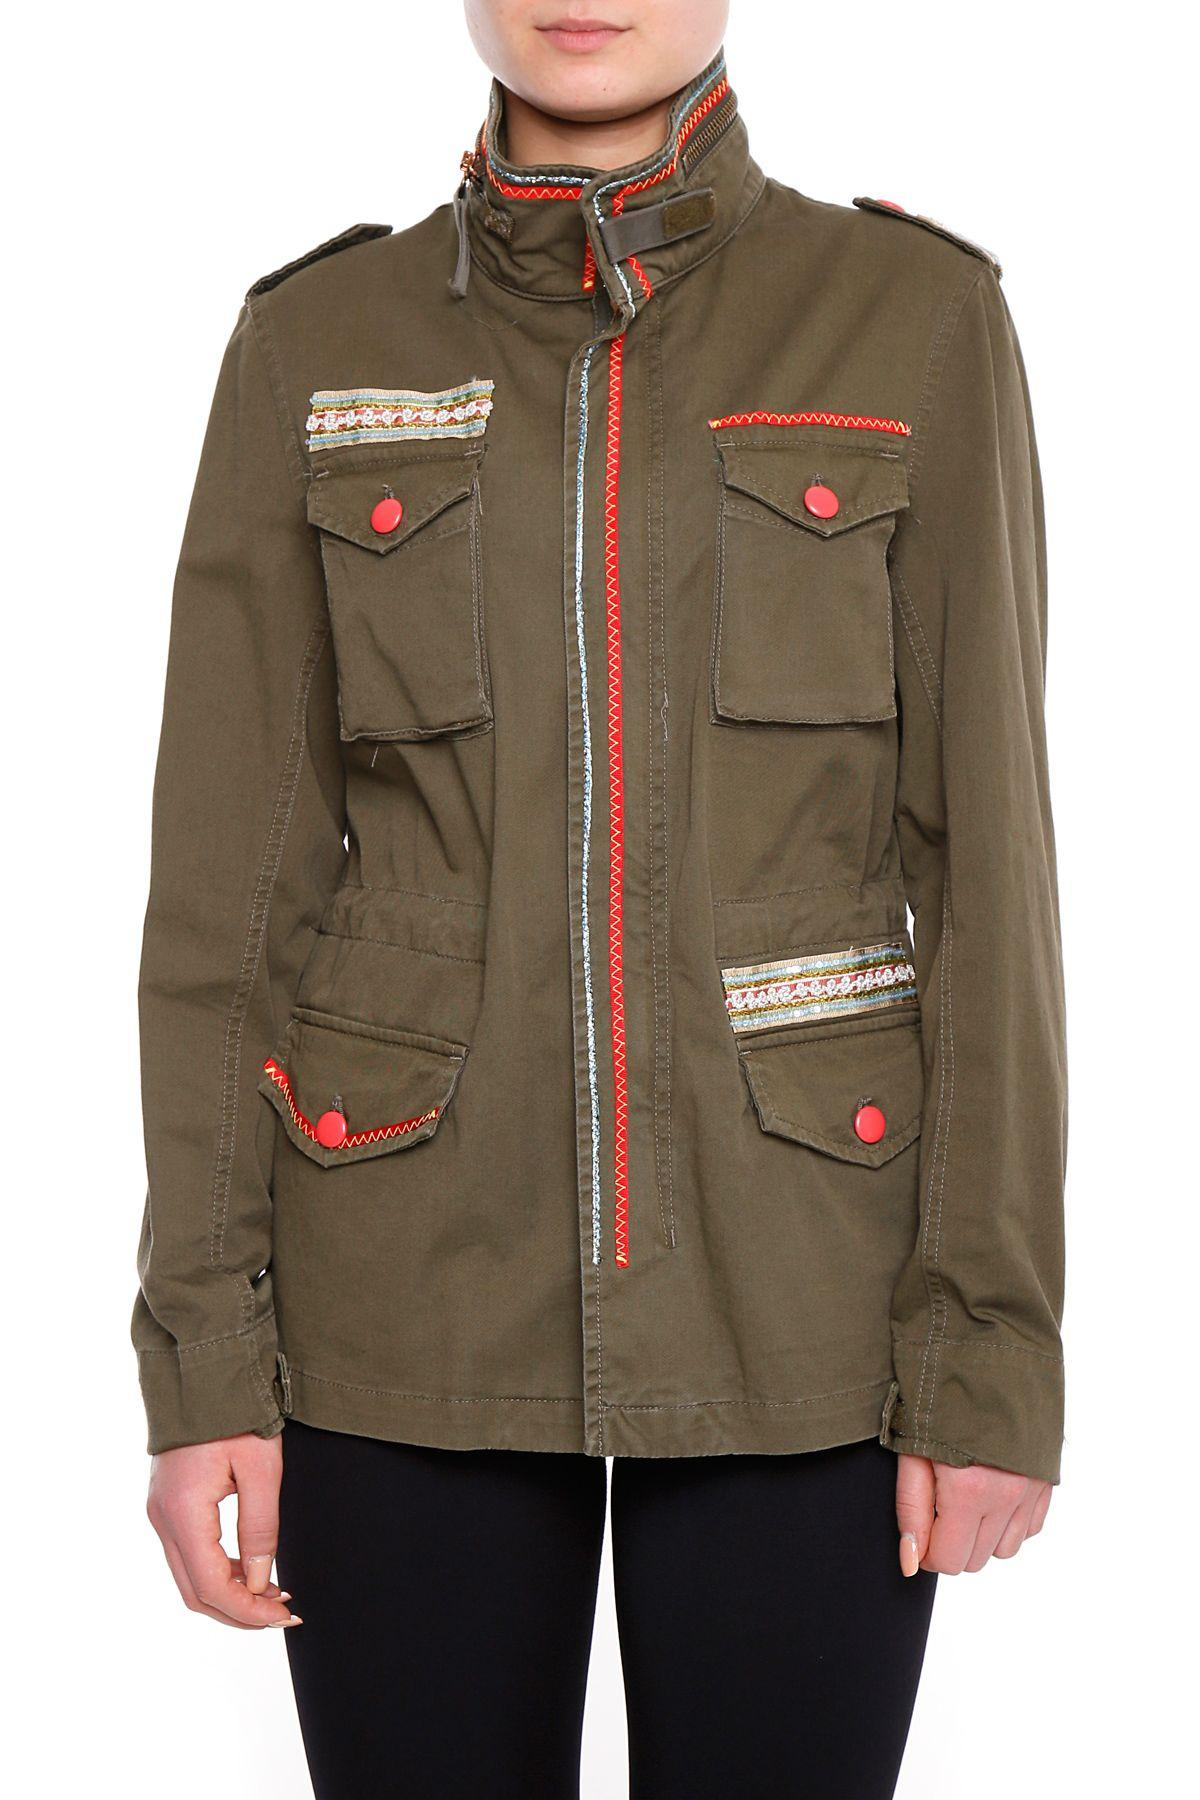 History Repeats Stretch Cotton Jacket In Verde Militare